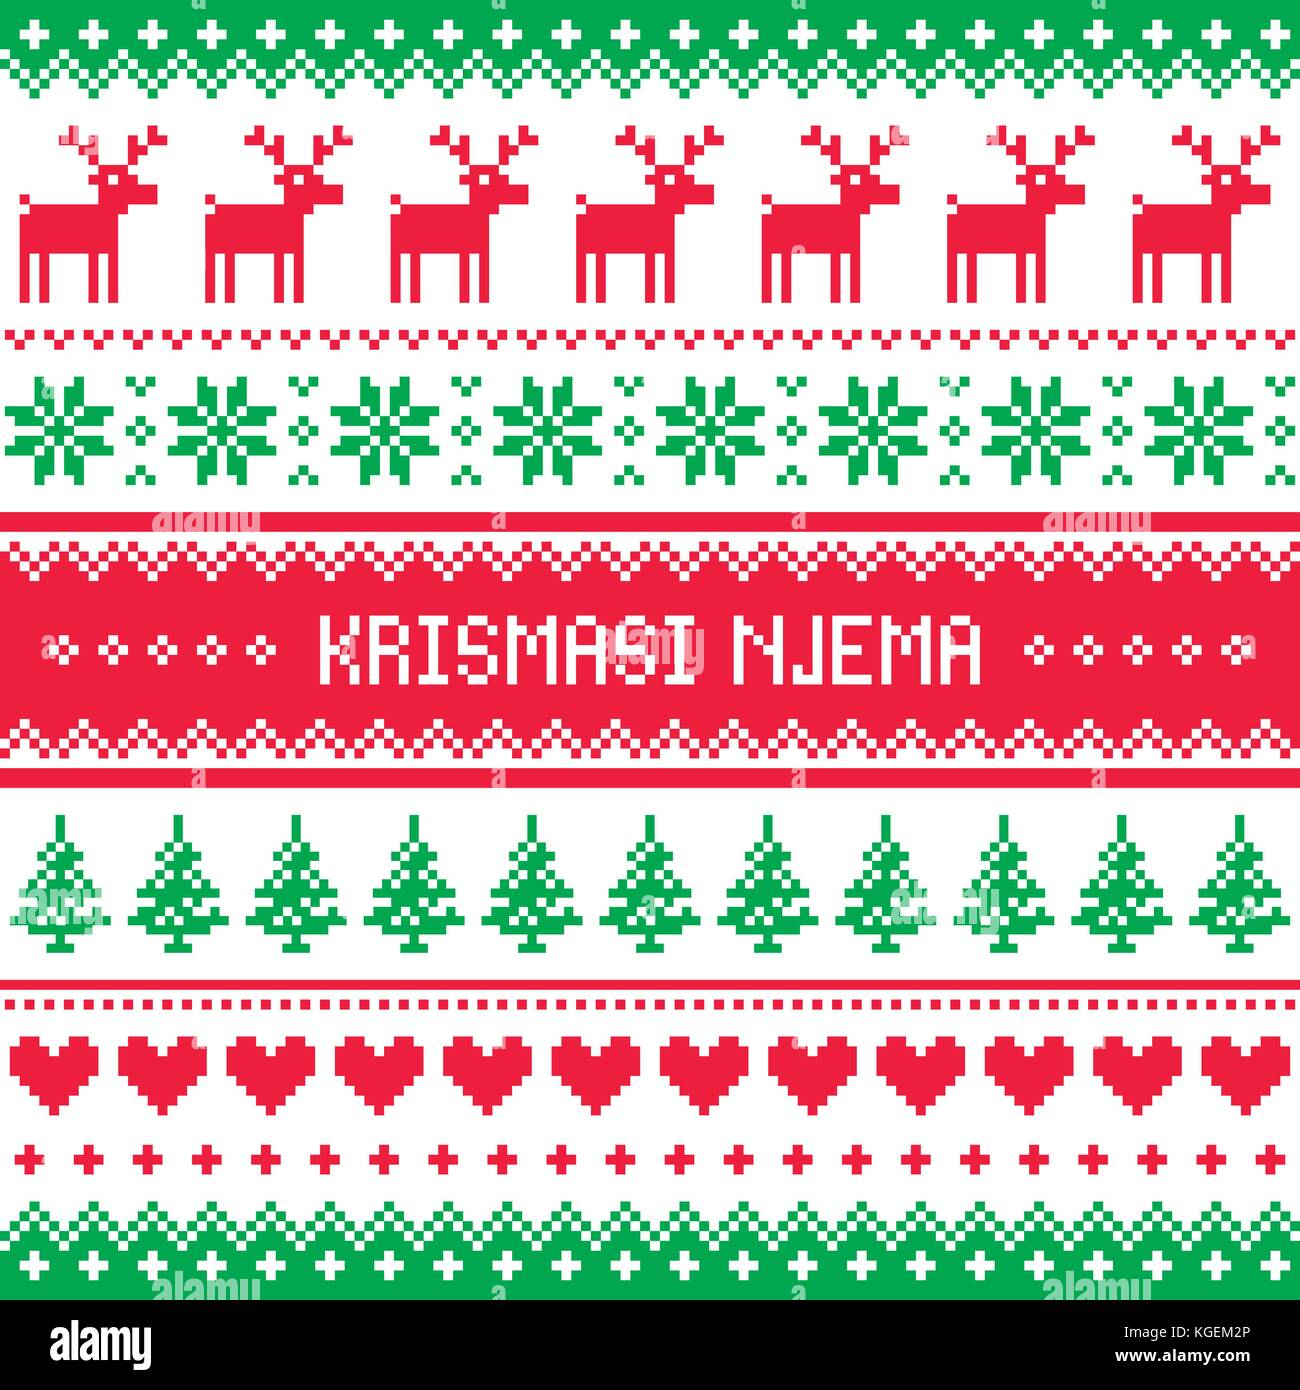 Swahili language stock photos swahili language stock images alamy krismasi njema vector greeting card merry christmas pattern in swahili african language stock m4hsunfo